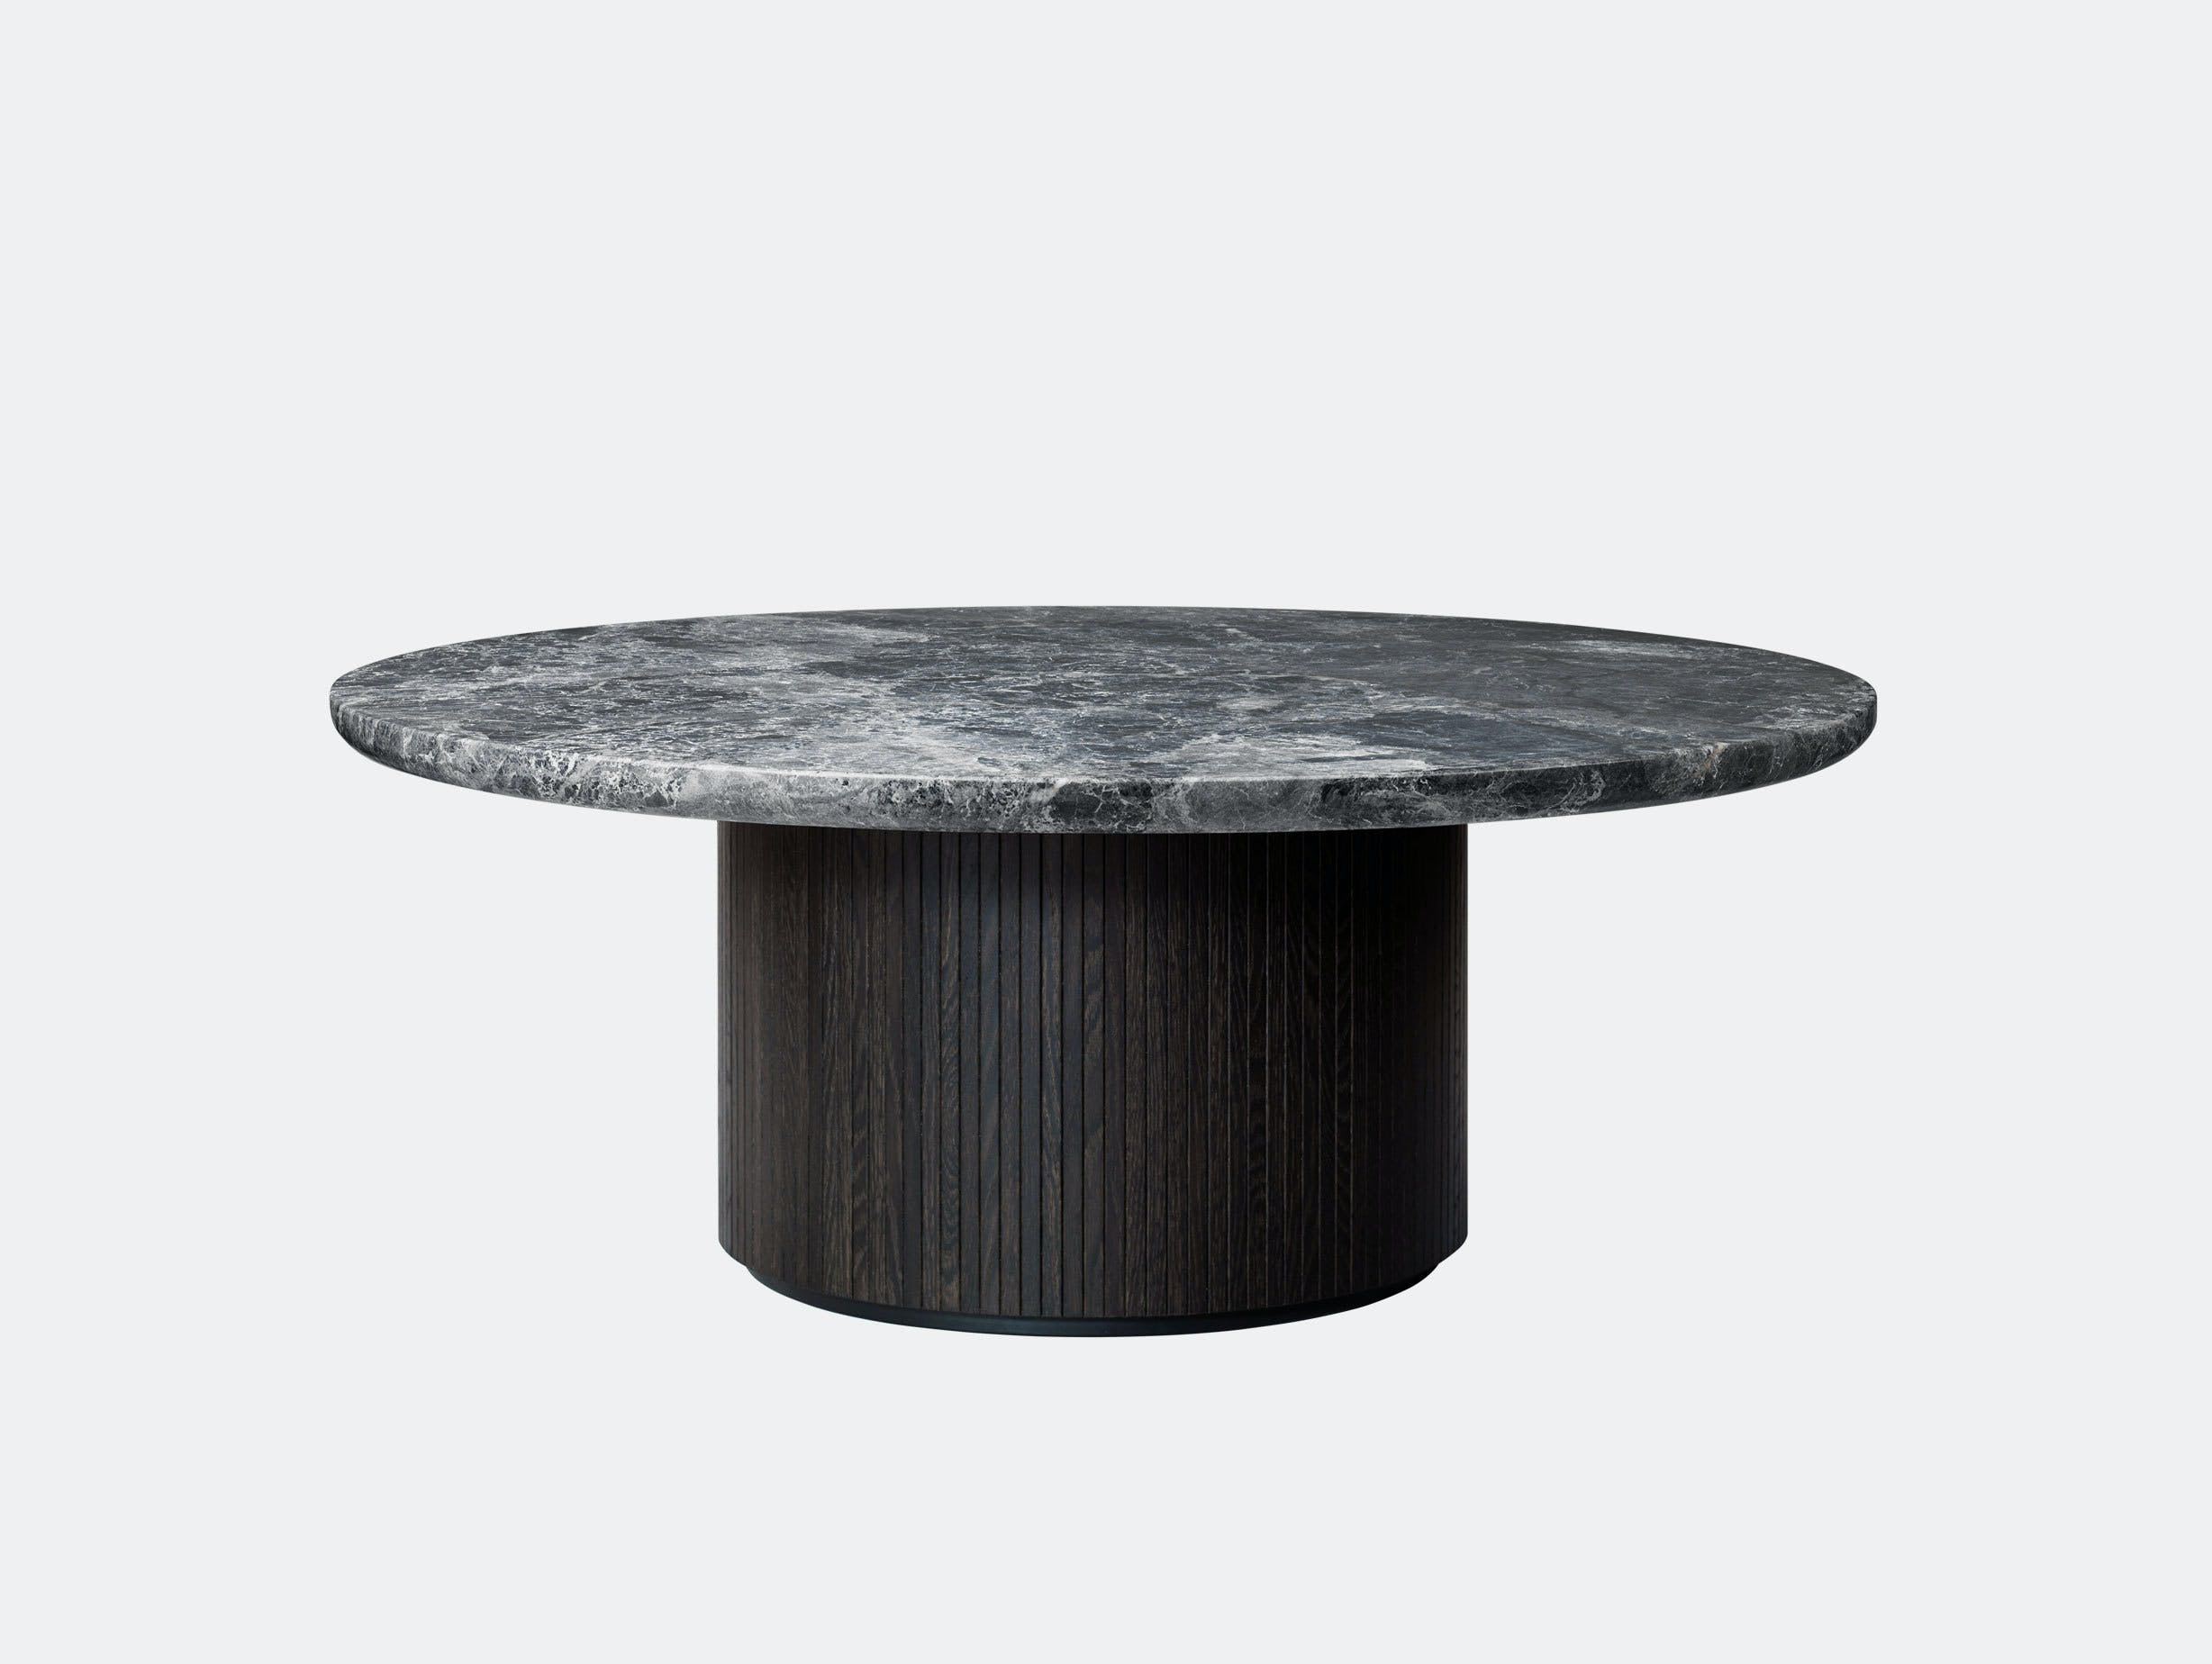 Gubi Moon Coffee Table dia 120cm Grey Emperador Marble Space Copenhagen